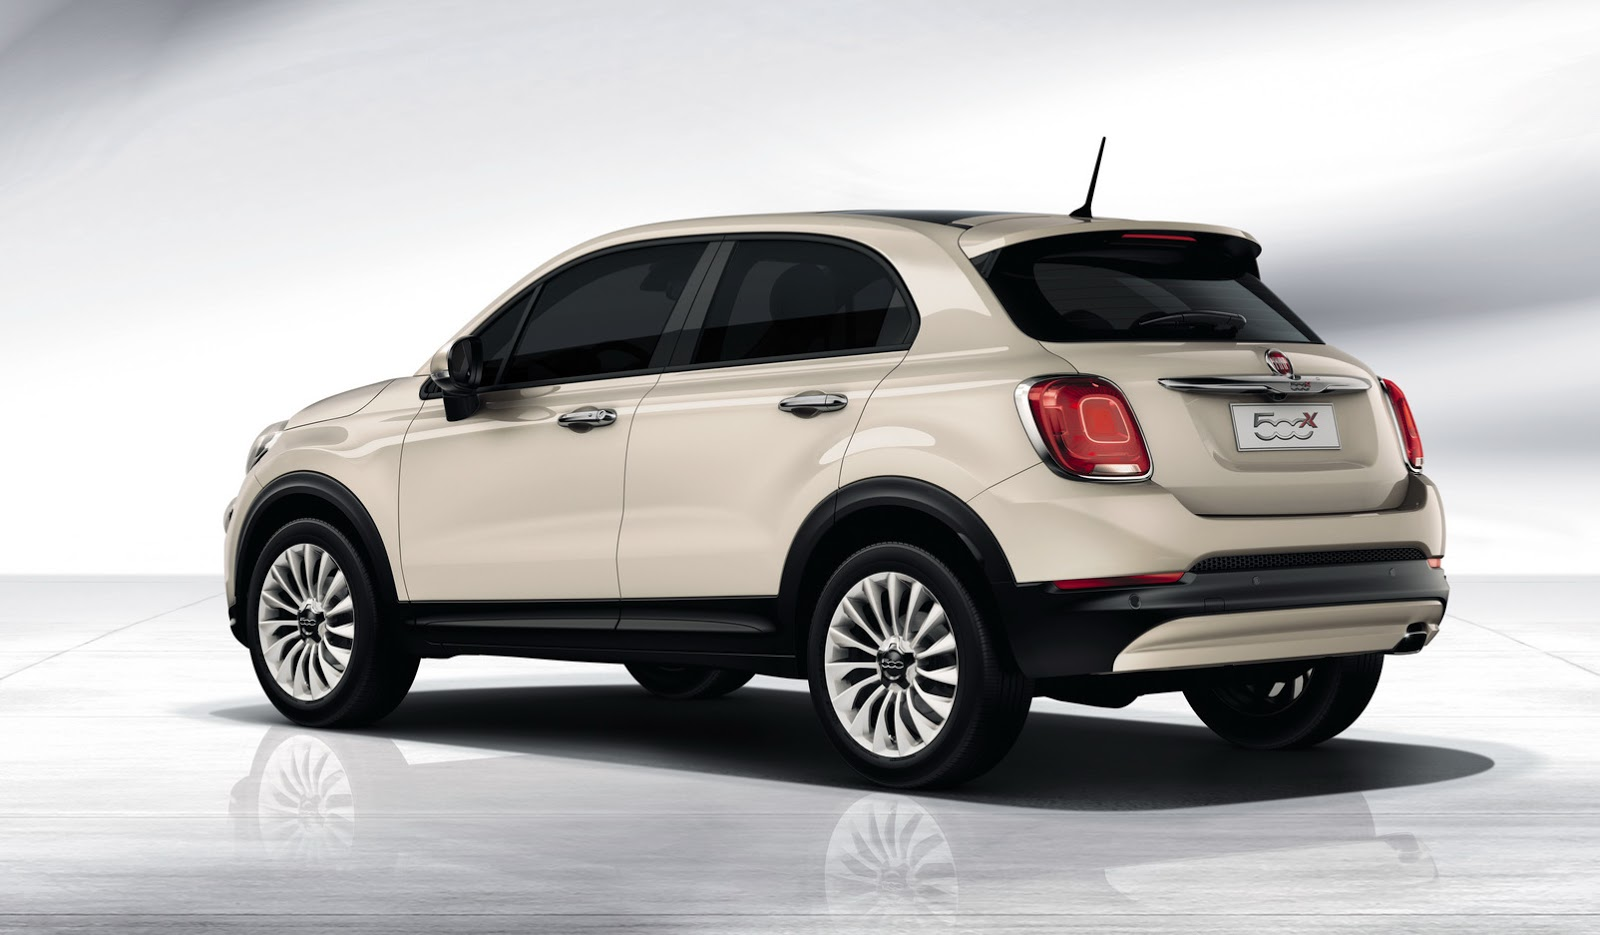 Fiat S 500x Small Crossover Revealed Will Be Sold In U S